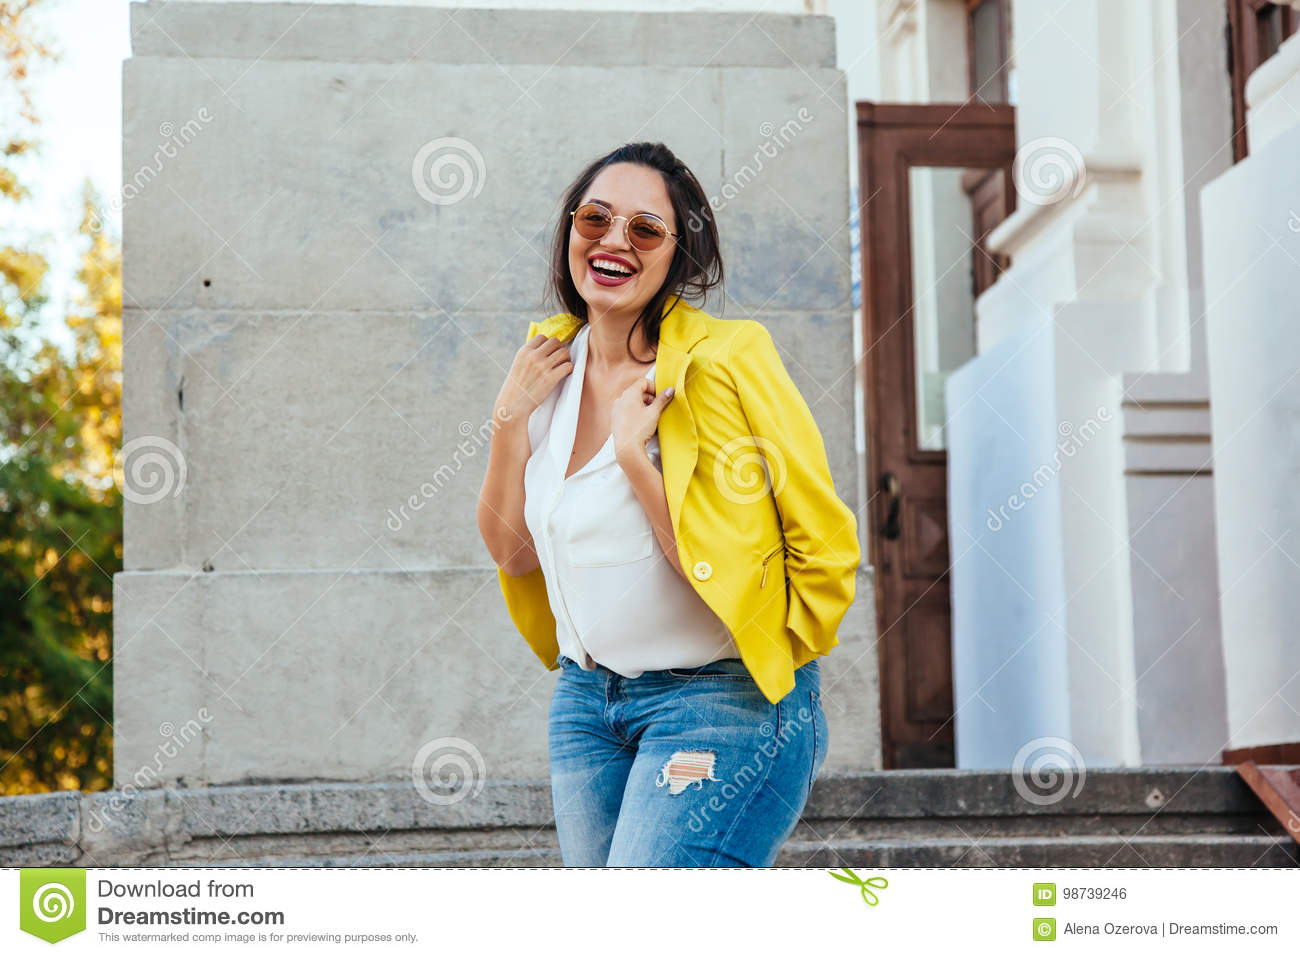 786d79c58e6 Pretty young woman wearing bright colorful jacket walking on the city street.  Casual fashion